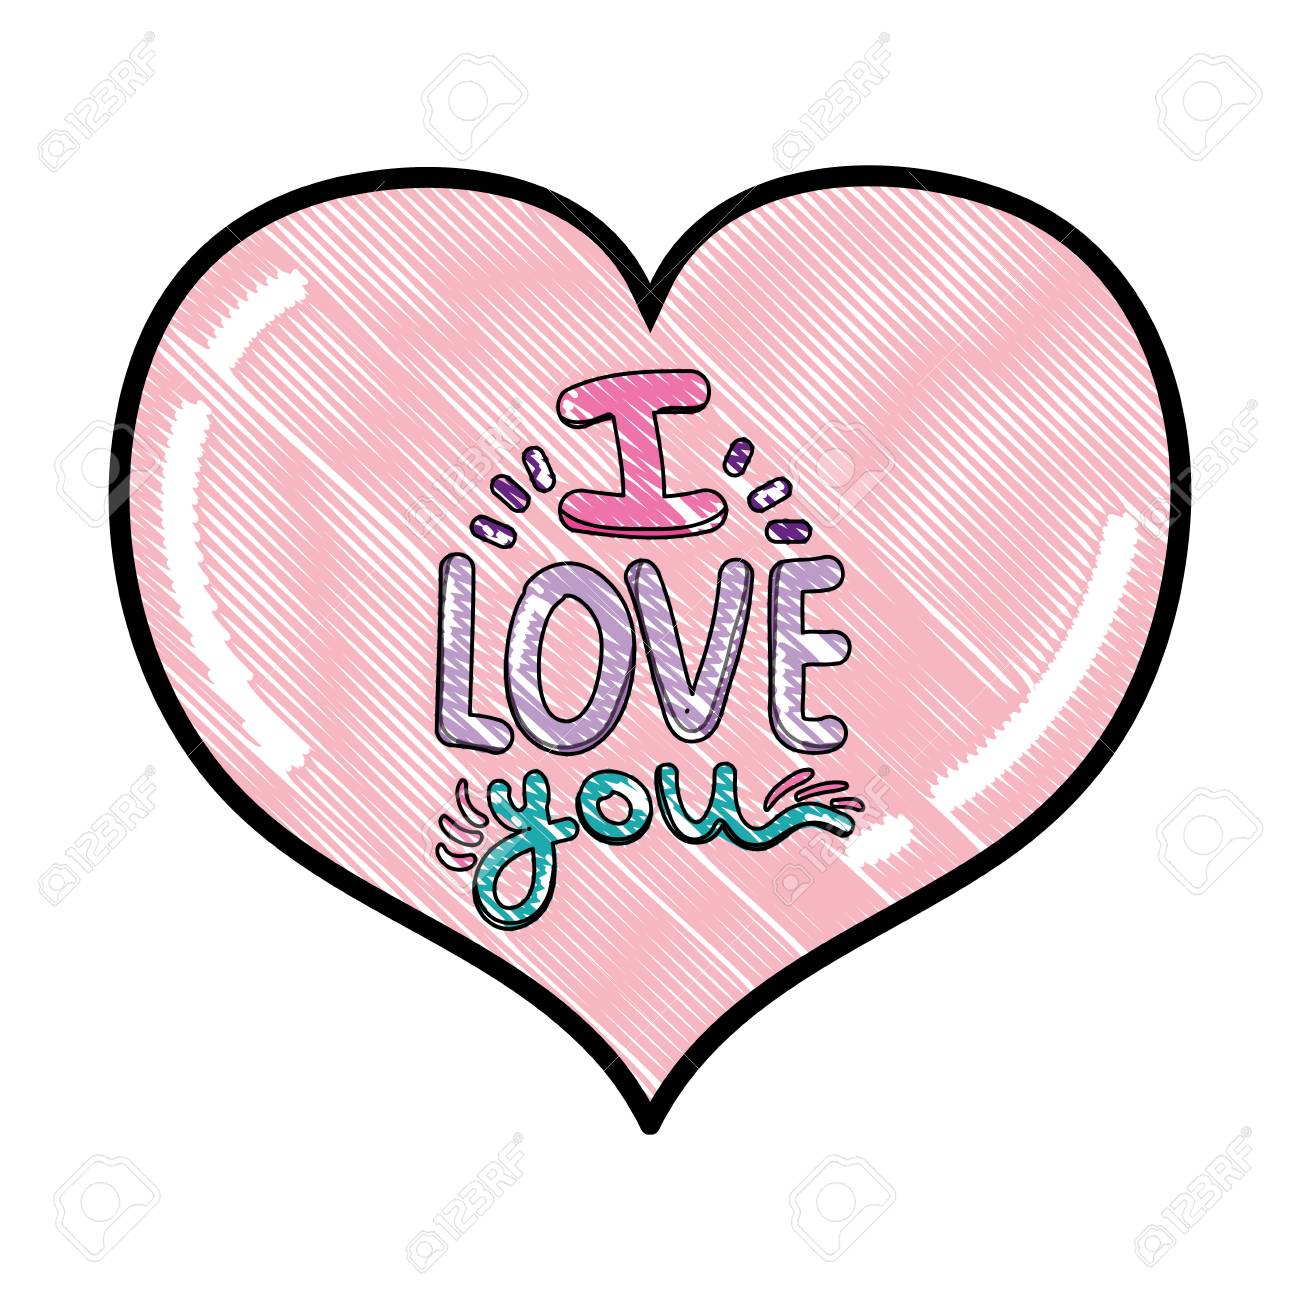 scribbled heart with i love you romantic message vector illustration - 110210259